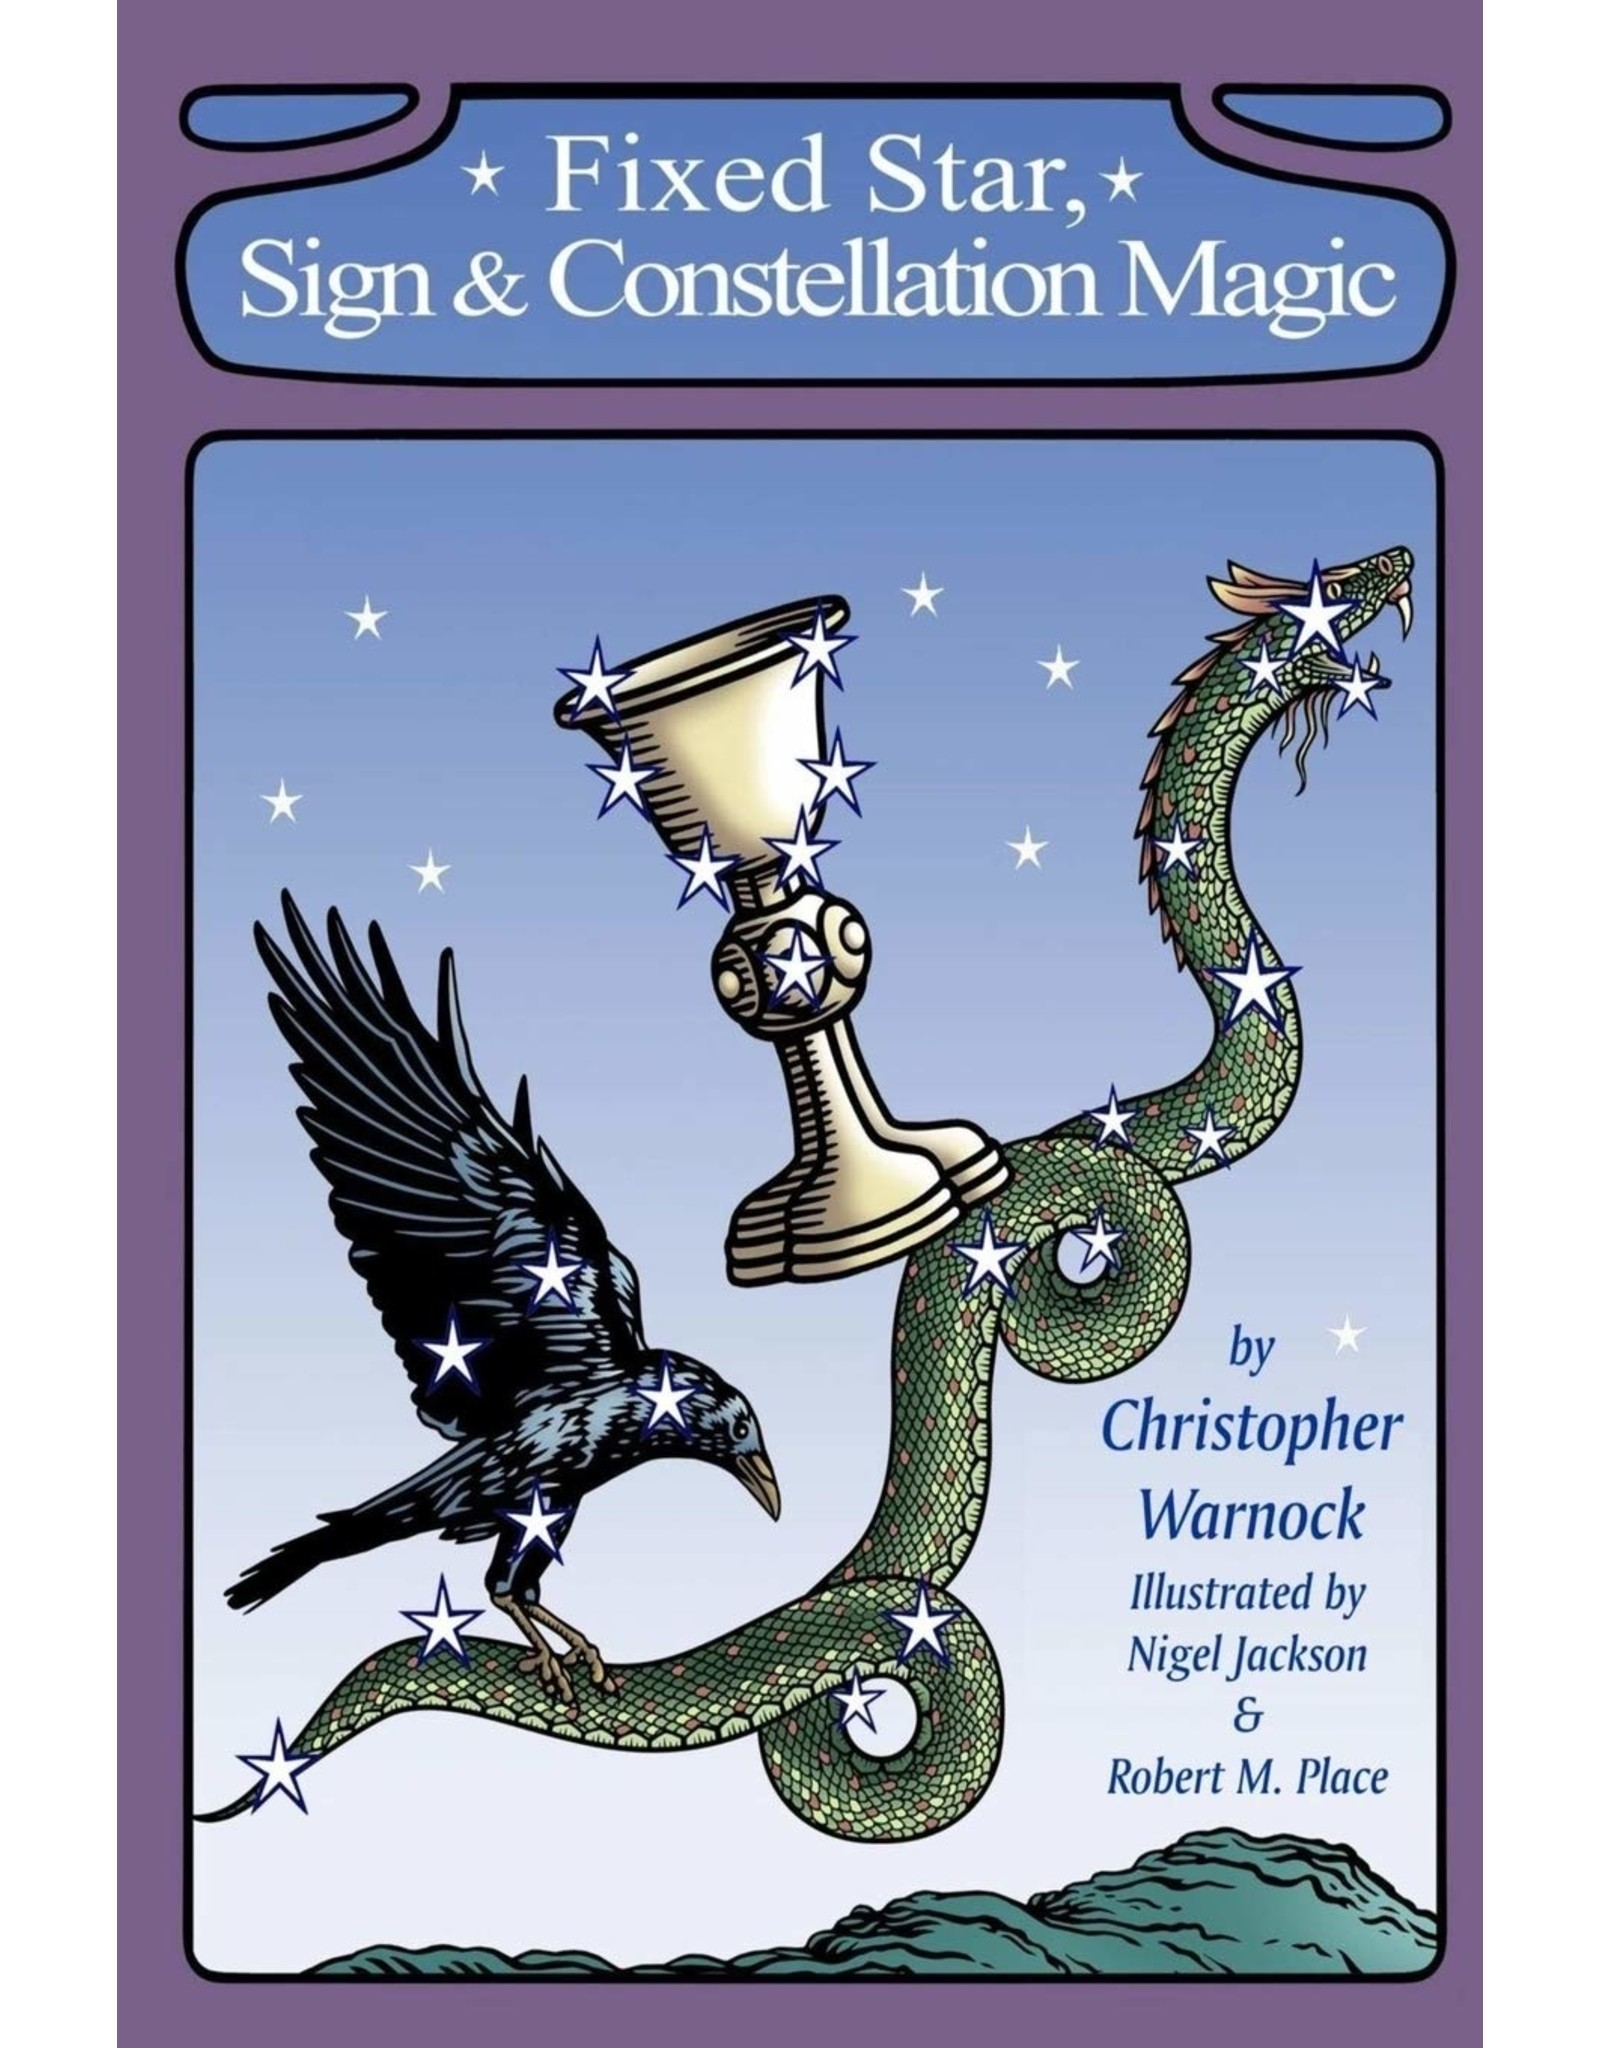 Fixed Star Signs & Constellation Magic